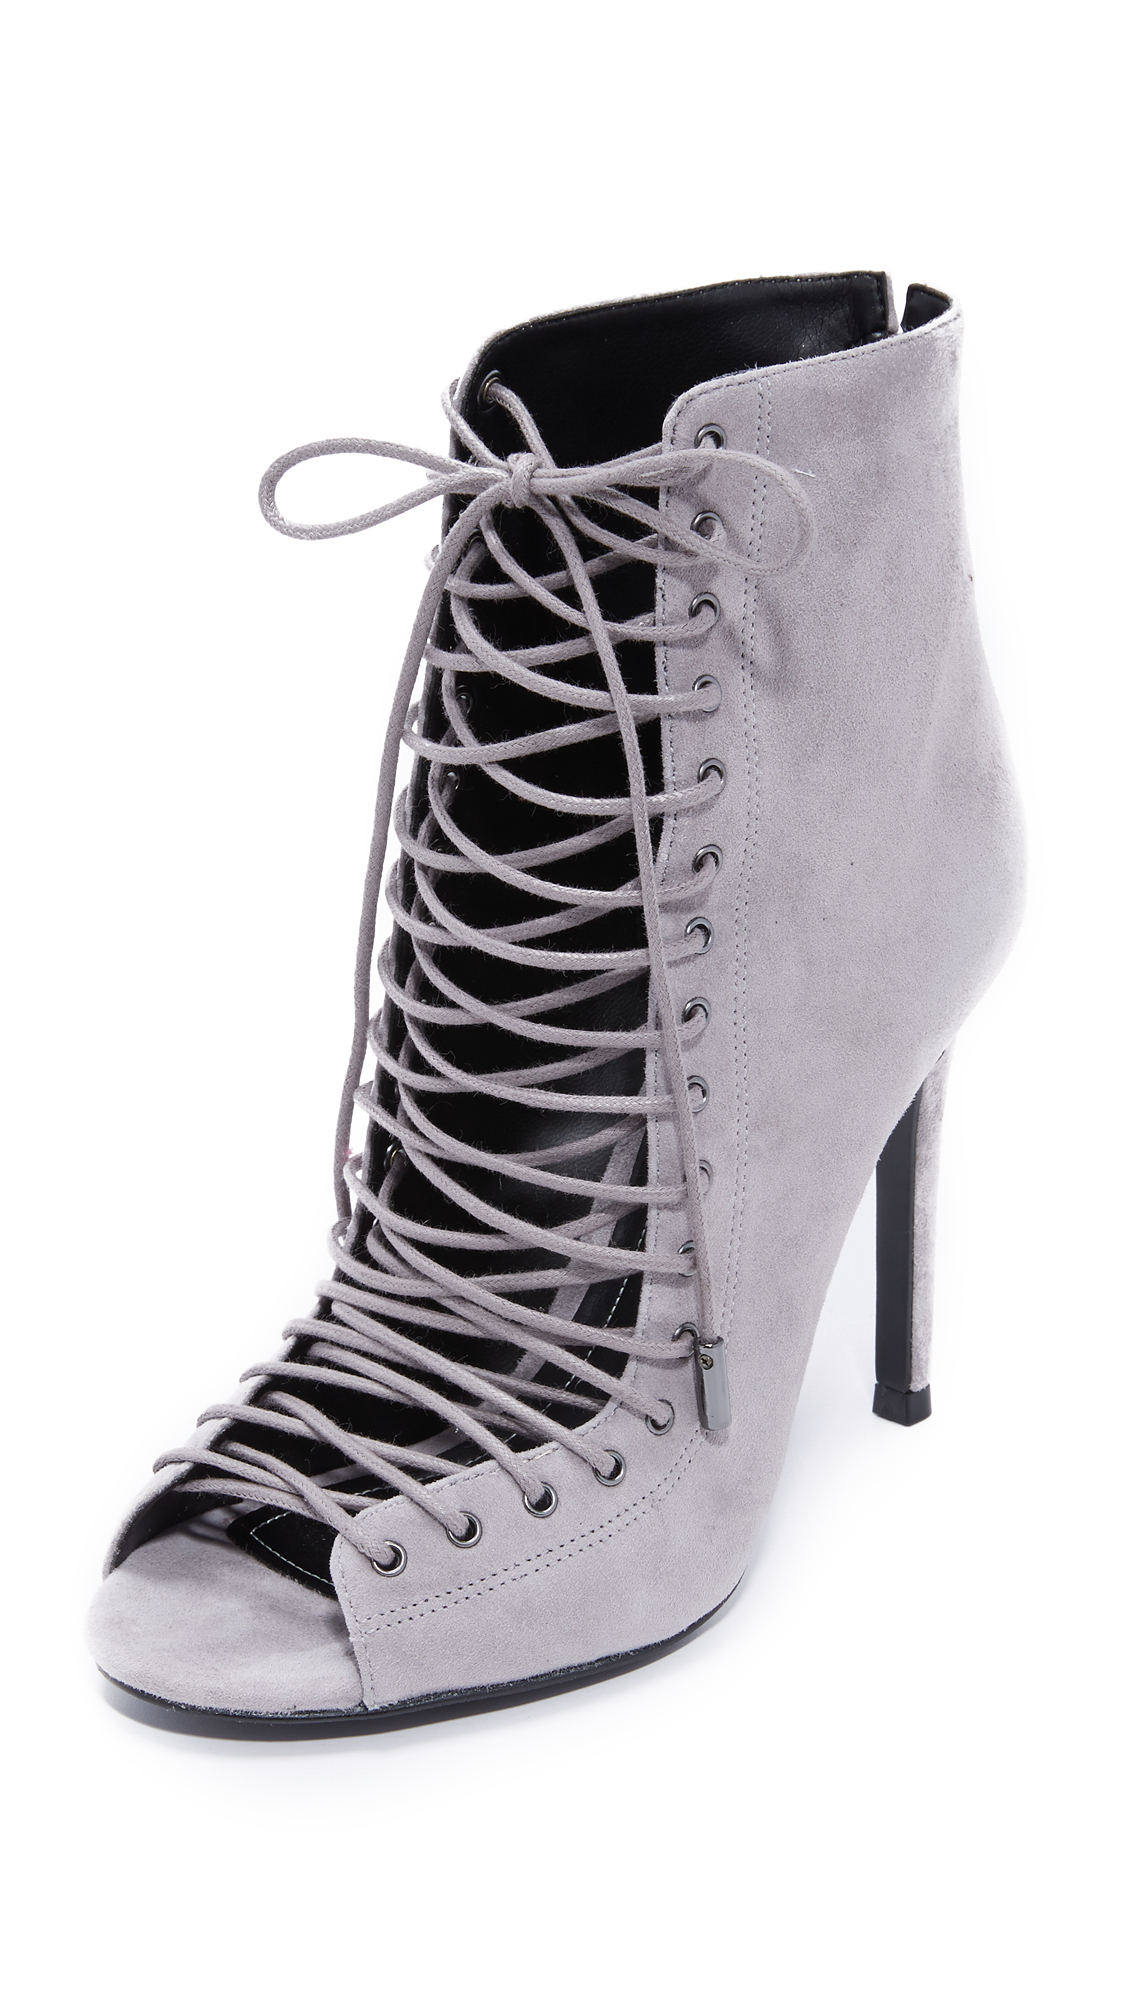 Kendall + Kylie Ginny Lace Up Heels - New Smoke